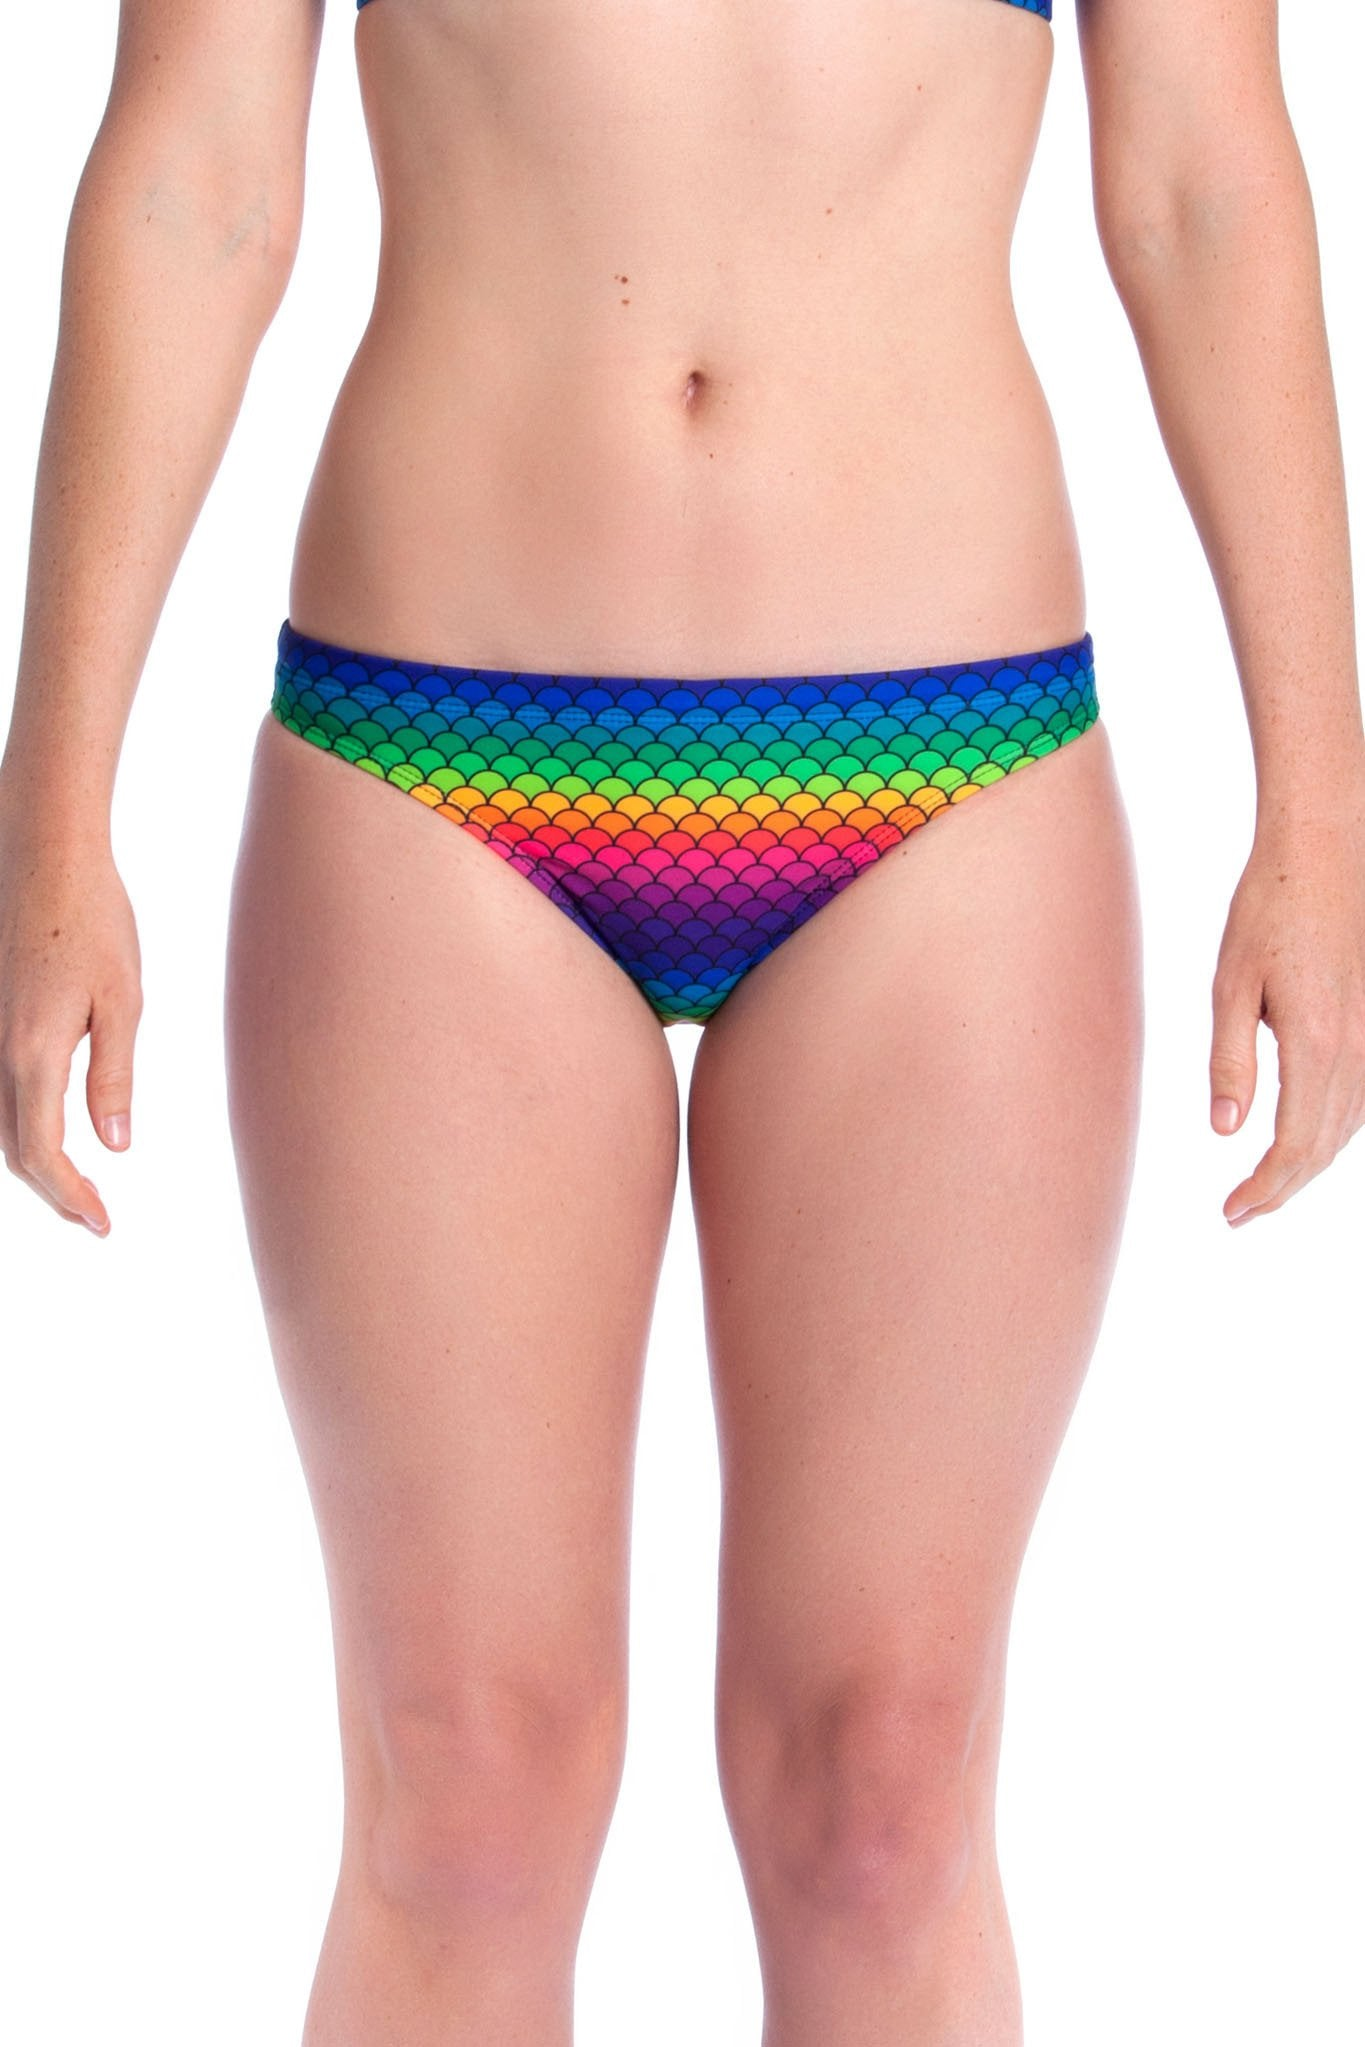 Rainbow Fish Briefs - Ladies 08 ONLY Ladies Two Piece - Briefs - Shop Zealous Training Swimwear